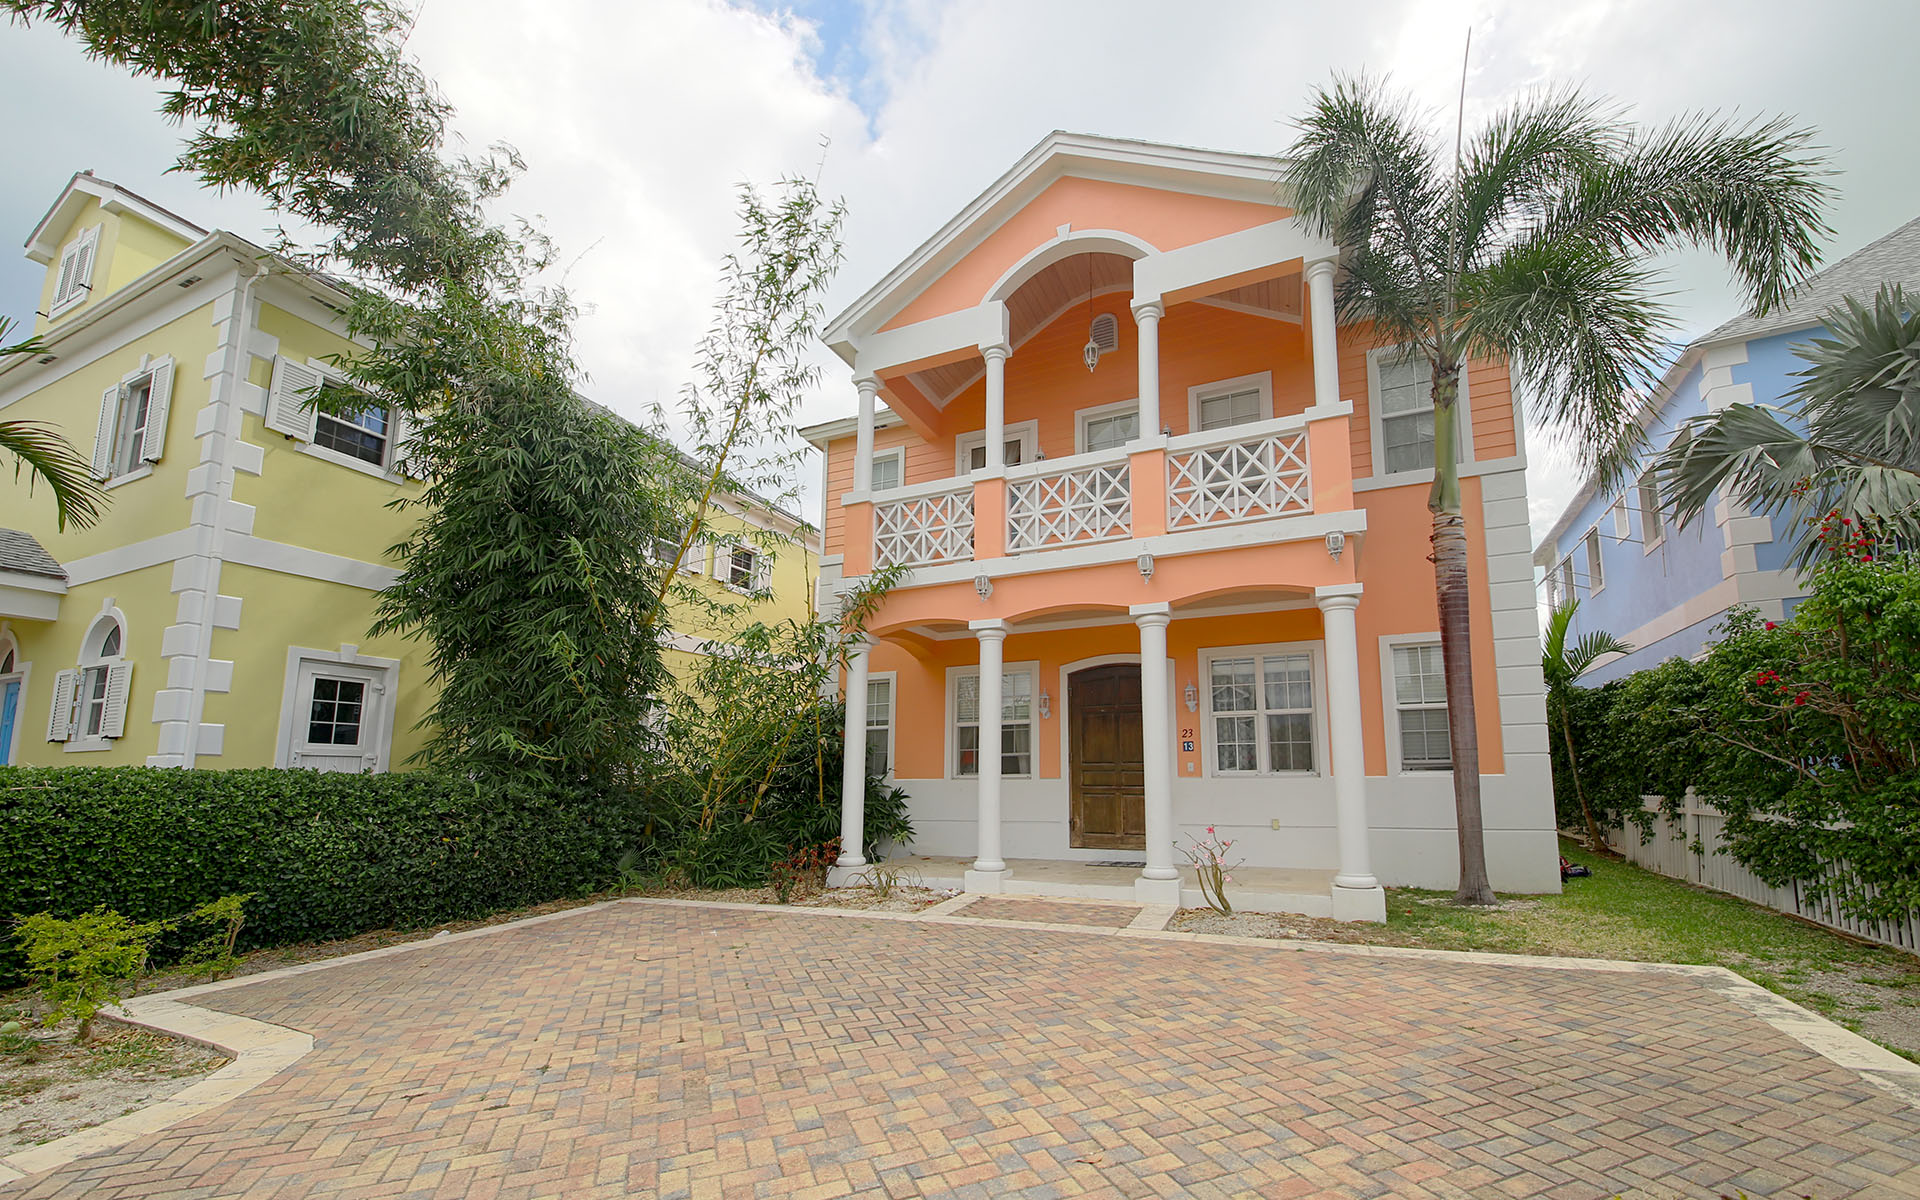 Moradia para Venda às Traditional Colonial Style Home in Sandyport Nassau New Providence And Vicinity